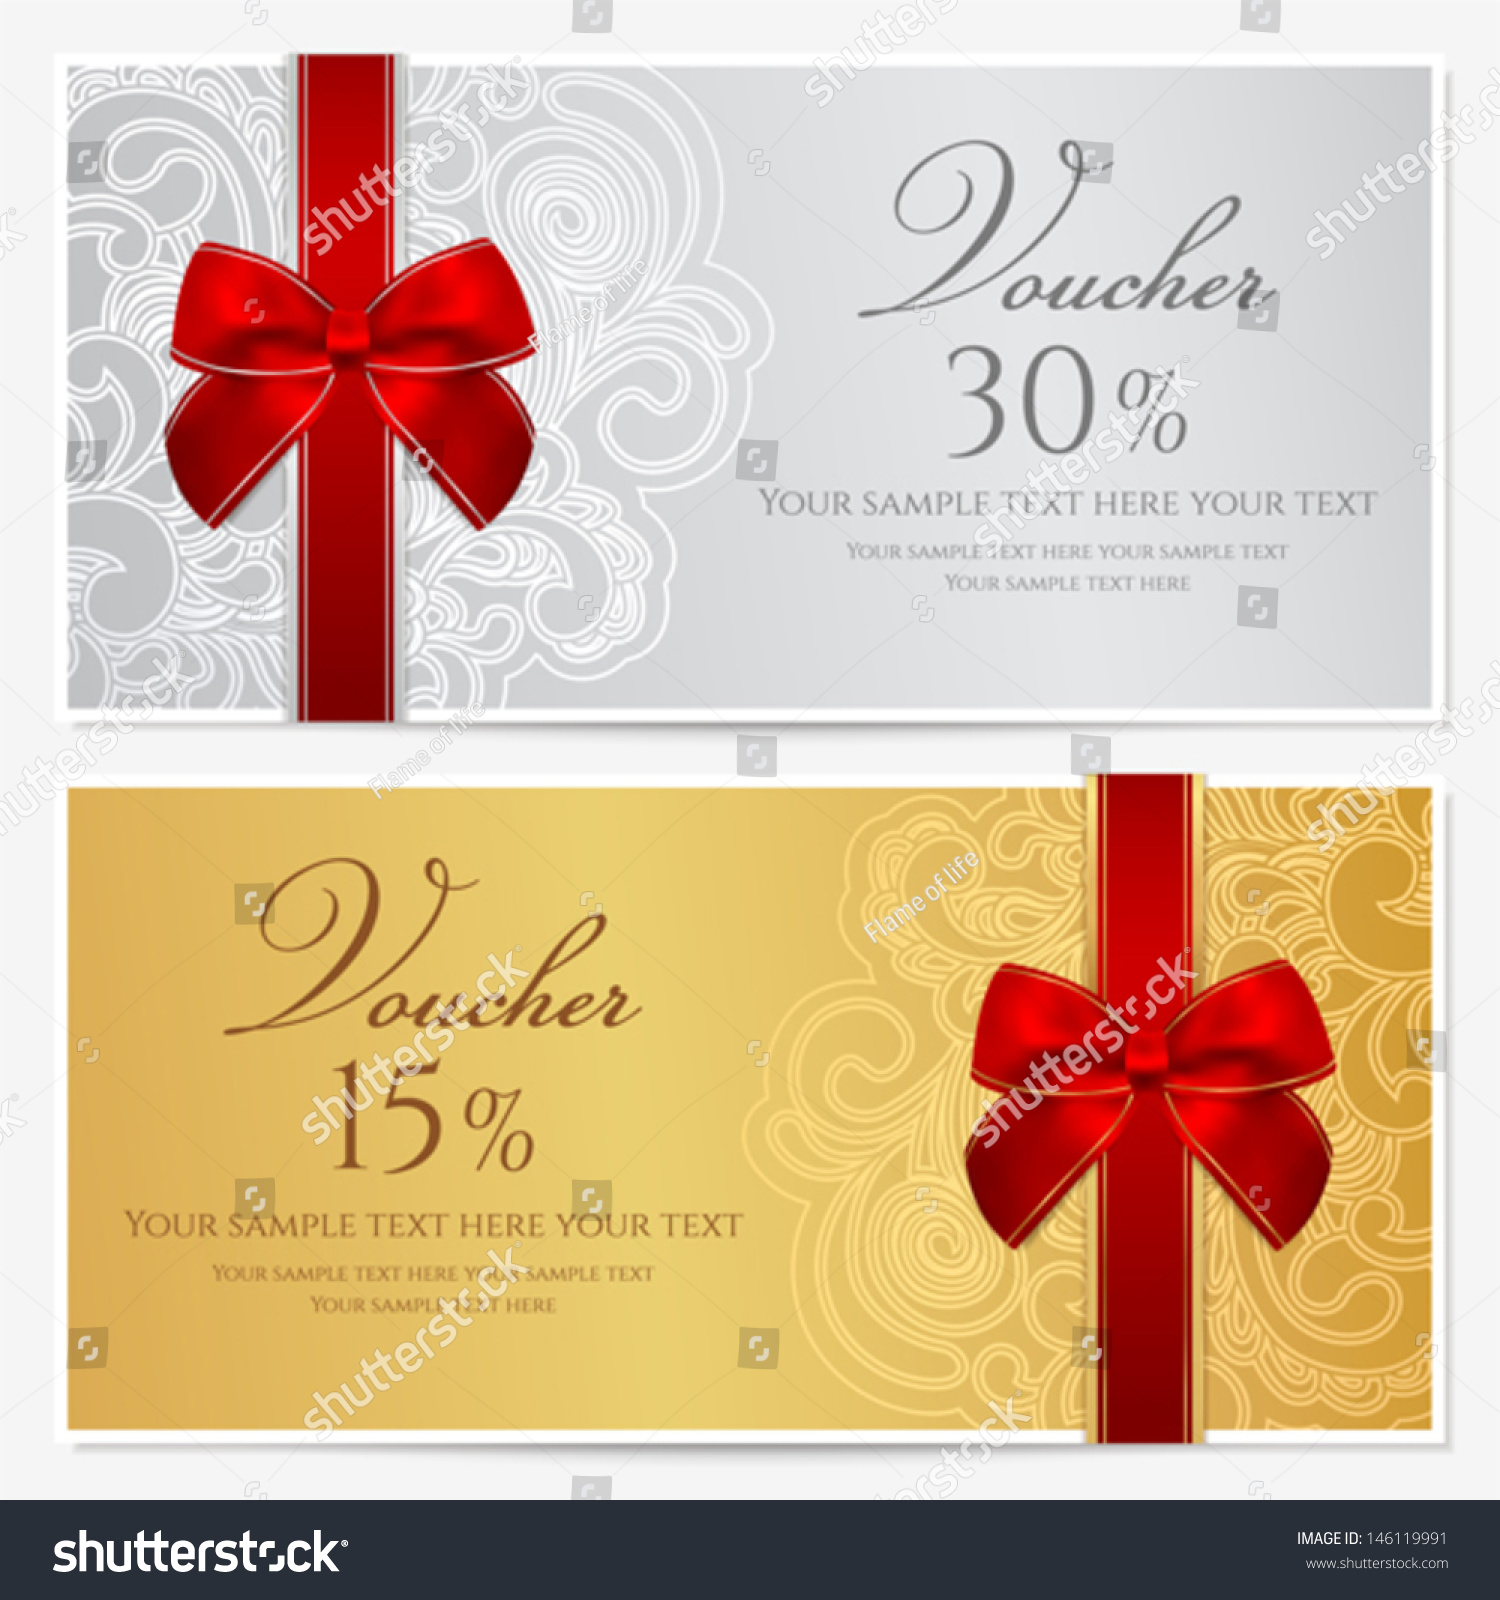 Voucher Gift Certificate Coupon Template Border Stock Vector ...